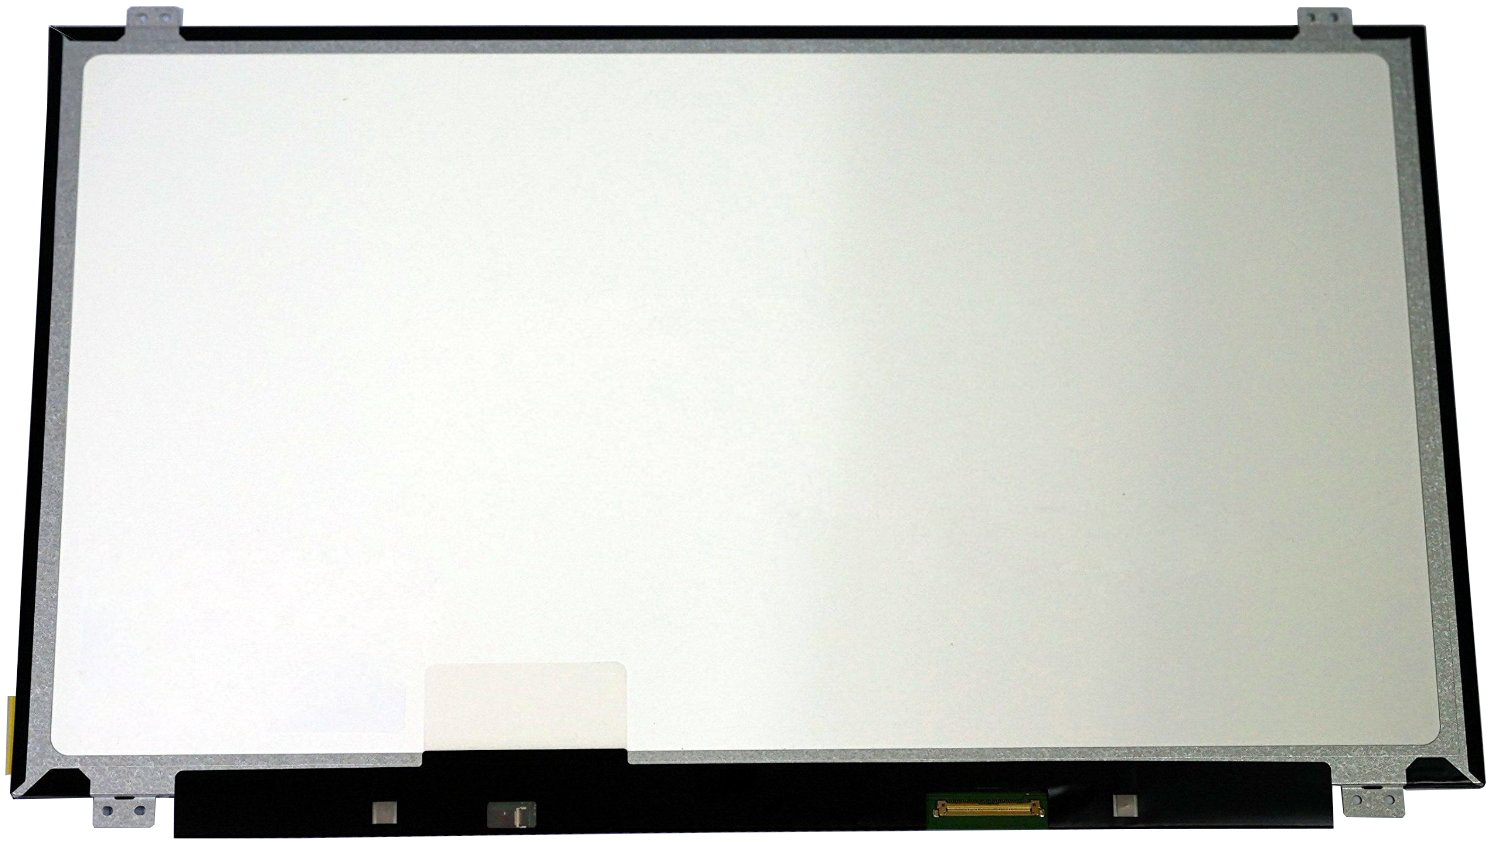 QuYing Laptop LCD Screen for Acer Aspire V5-551G V5-551 V5-531G V5-531 V5-571 V5-571G ZR7 PEW71 (15.6 inch 1366x768 40pin N) 14 touch glass screen digitizer lcd panel display assembly panel for acer aspire v5 471 v5 471p v5 471pg v5 431p v5 431pg